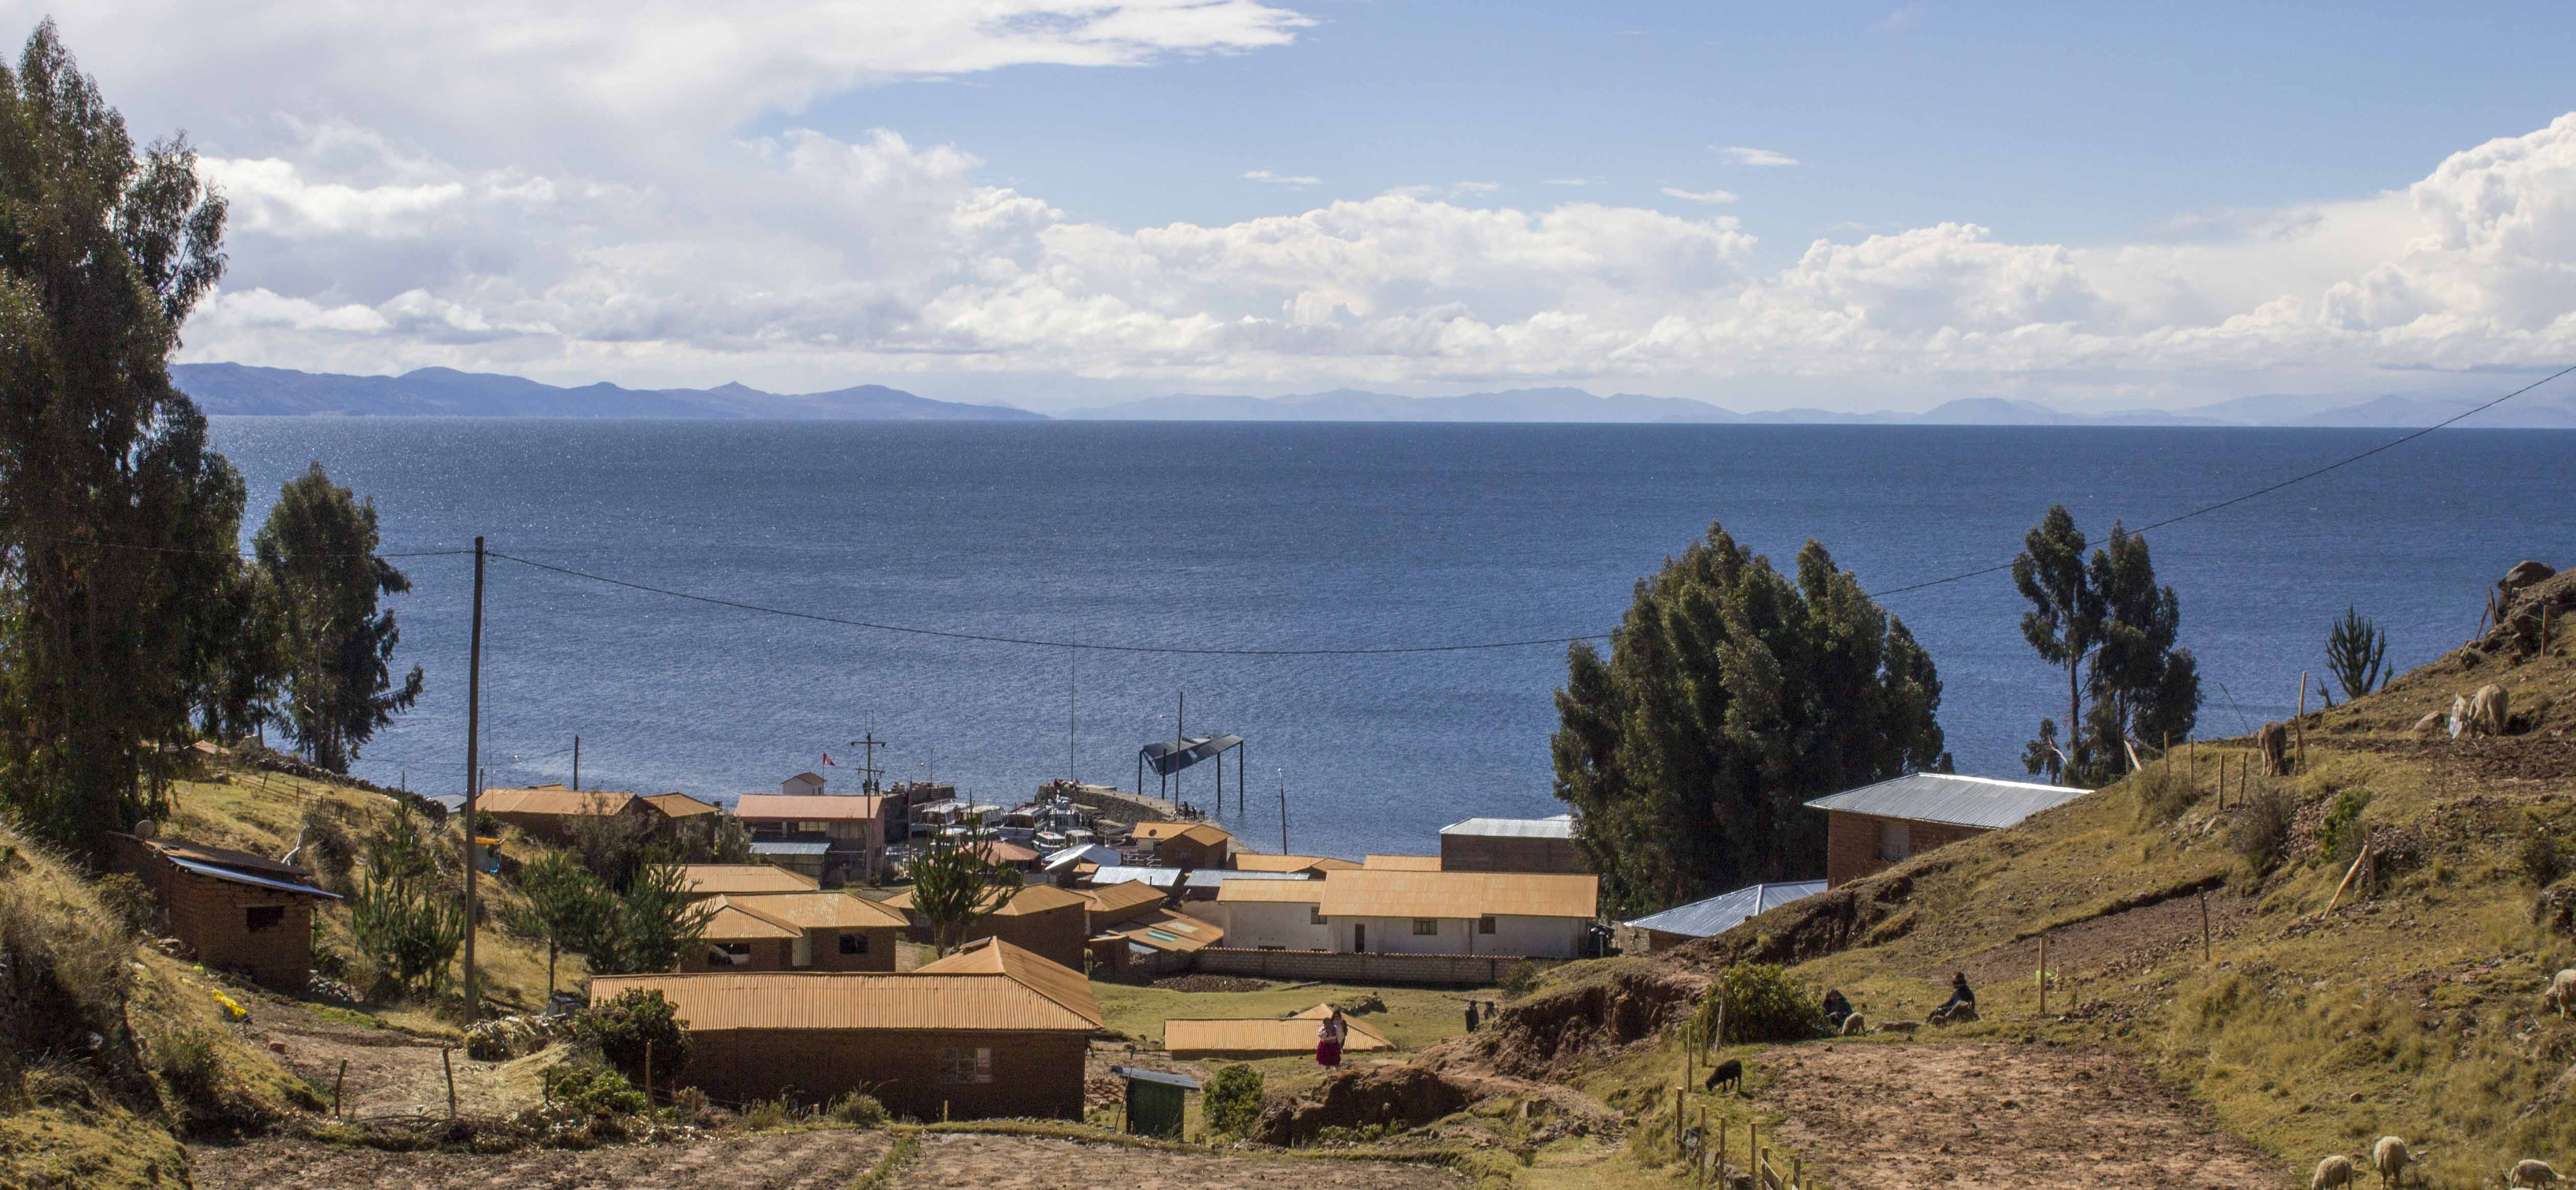 Heading to our homestay on Lake Titicaca